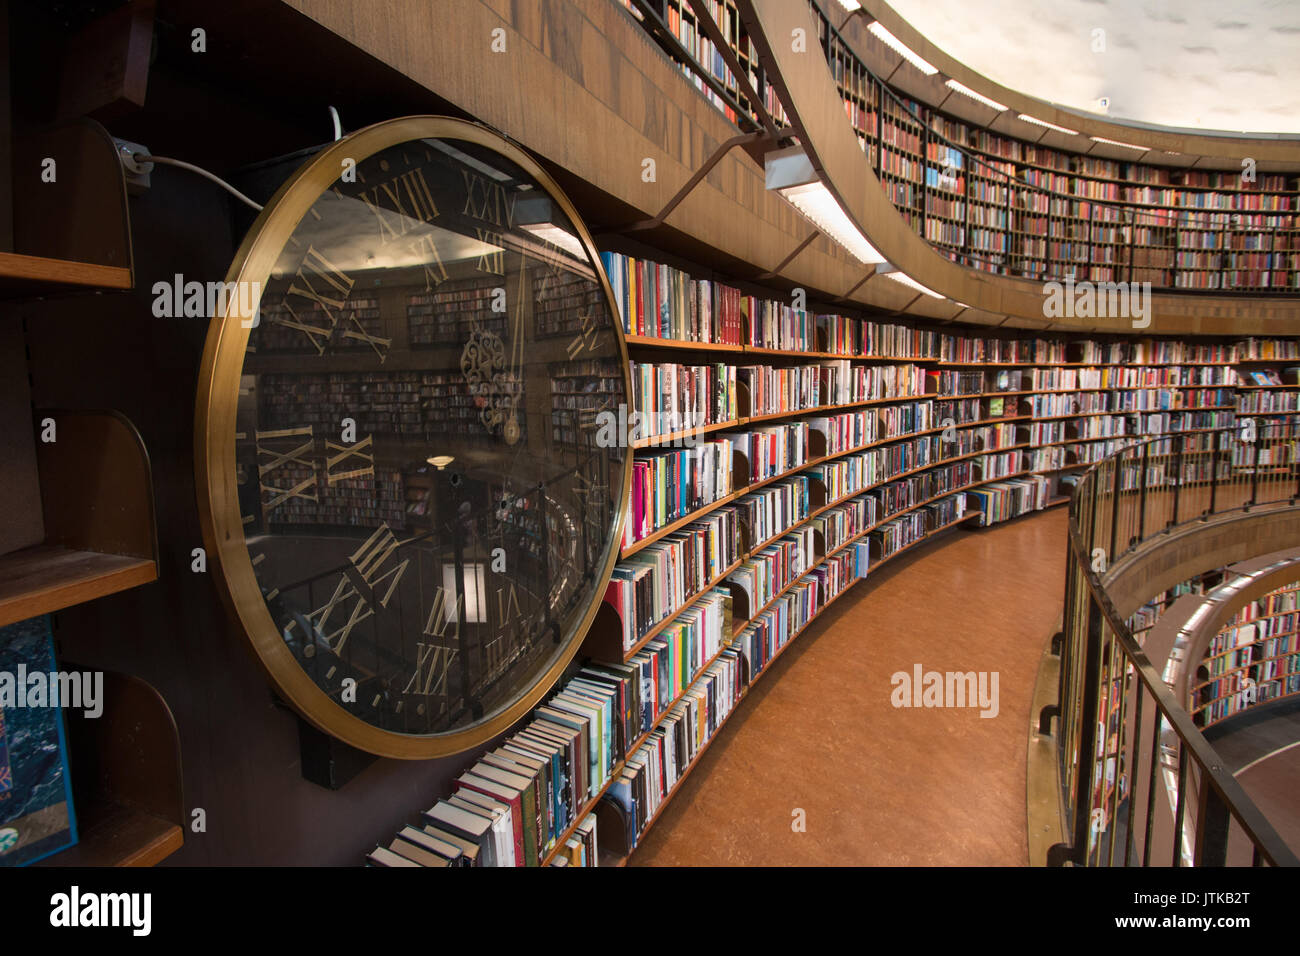 Knowledge is timeless. A wall clock at the beginning of a bookshelf, interior in Stockholm's municipal library, designed by Gunnar Asplund in 1928. - Stock Image